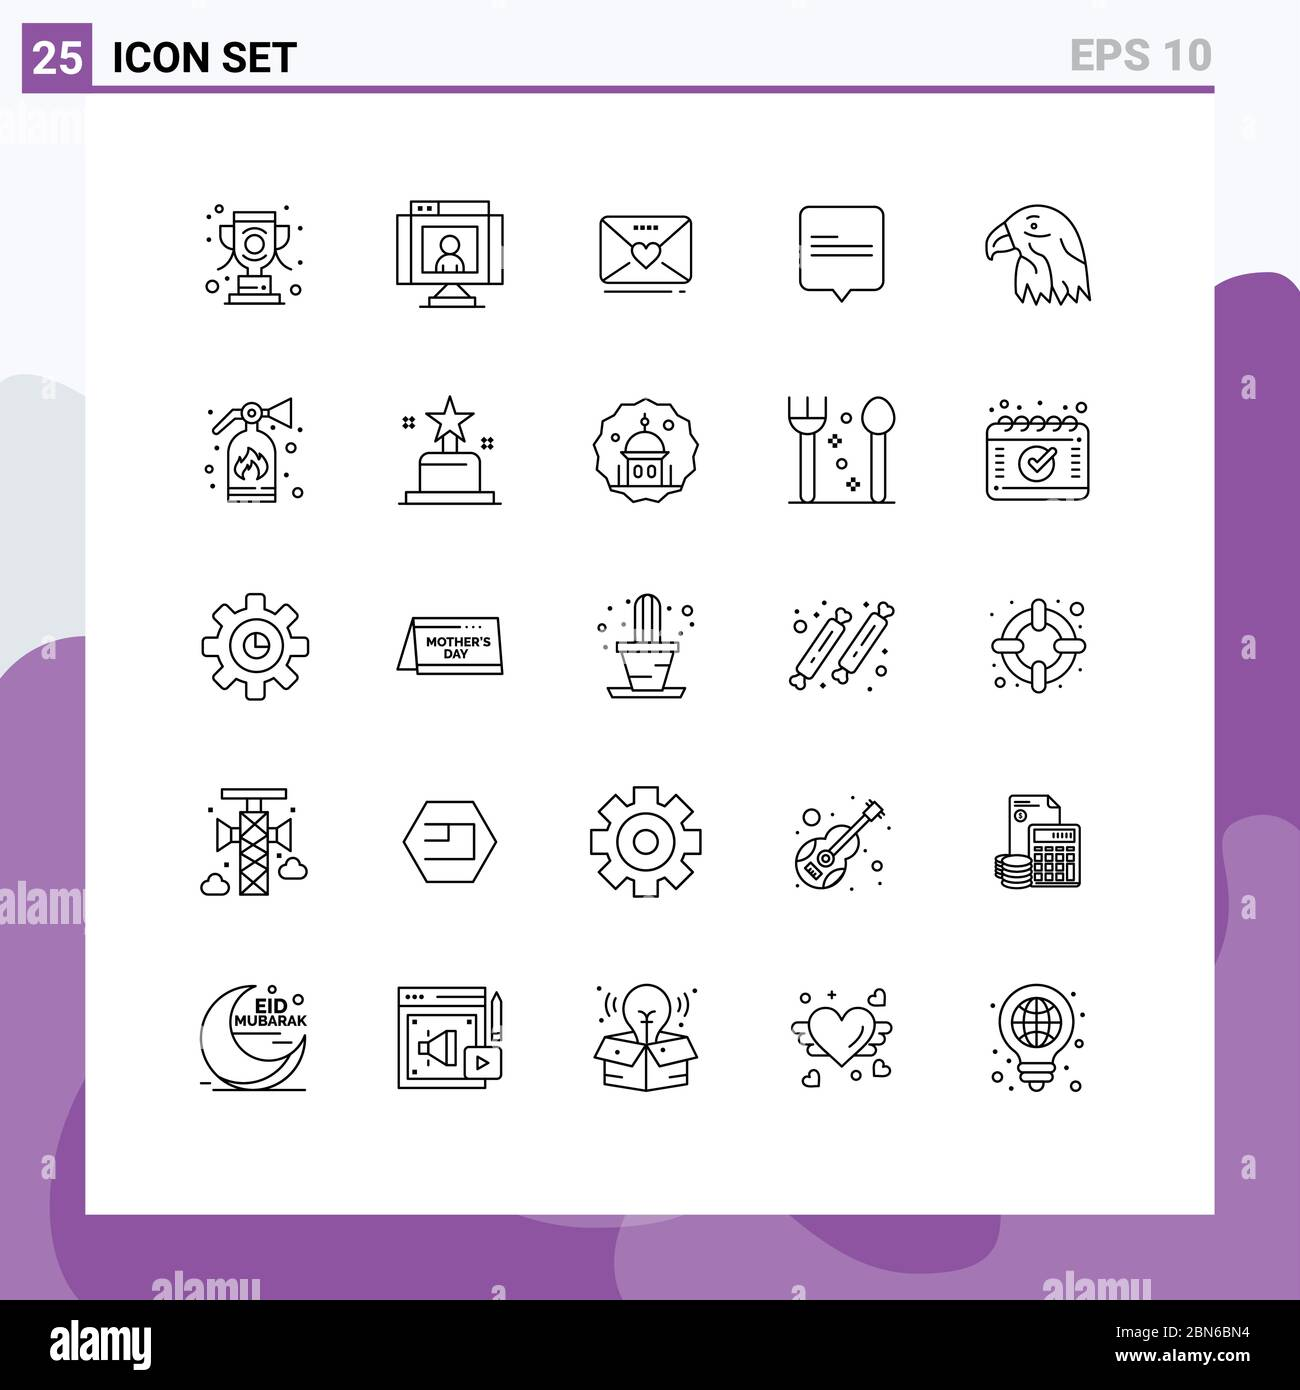 User Interface Pack Of 25 Basic Lines Of Bird Message Webcam Comment Heart Editable Vector Design Elements Stock